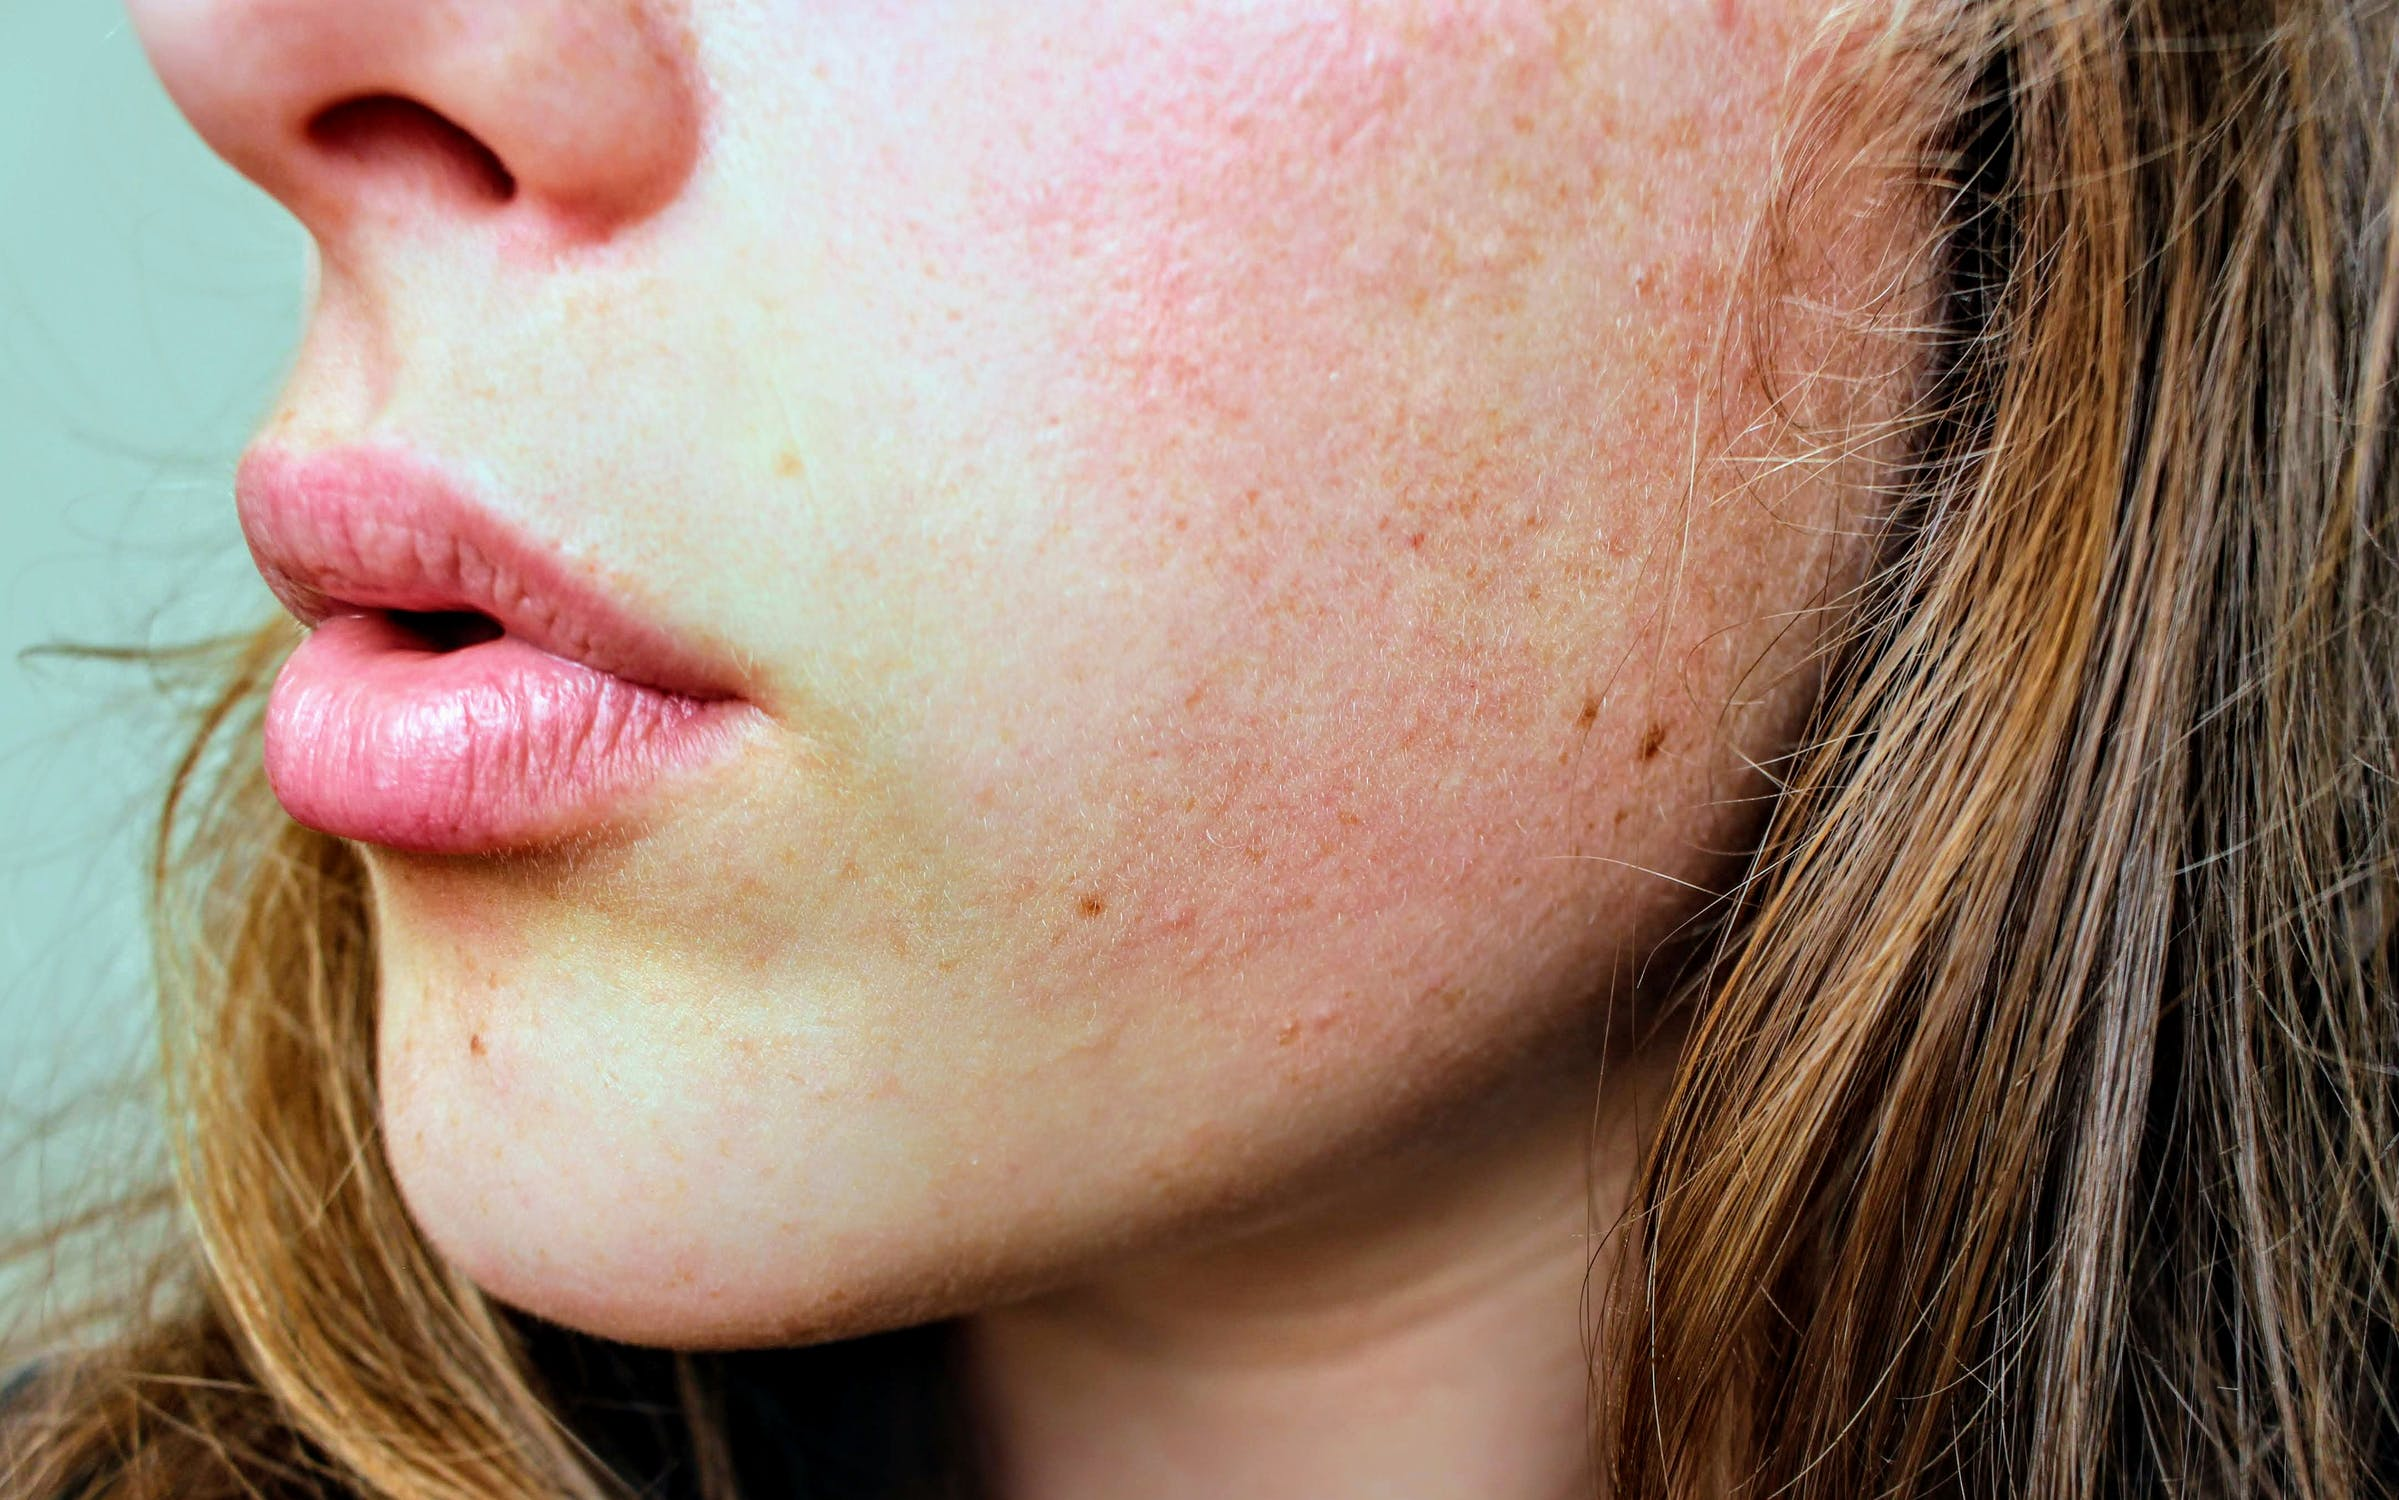 All you need to know about Eczema